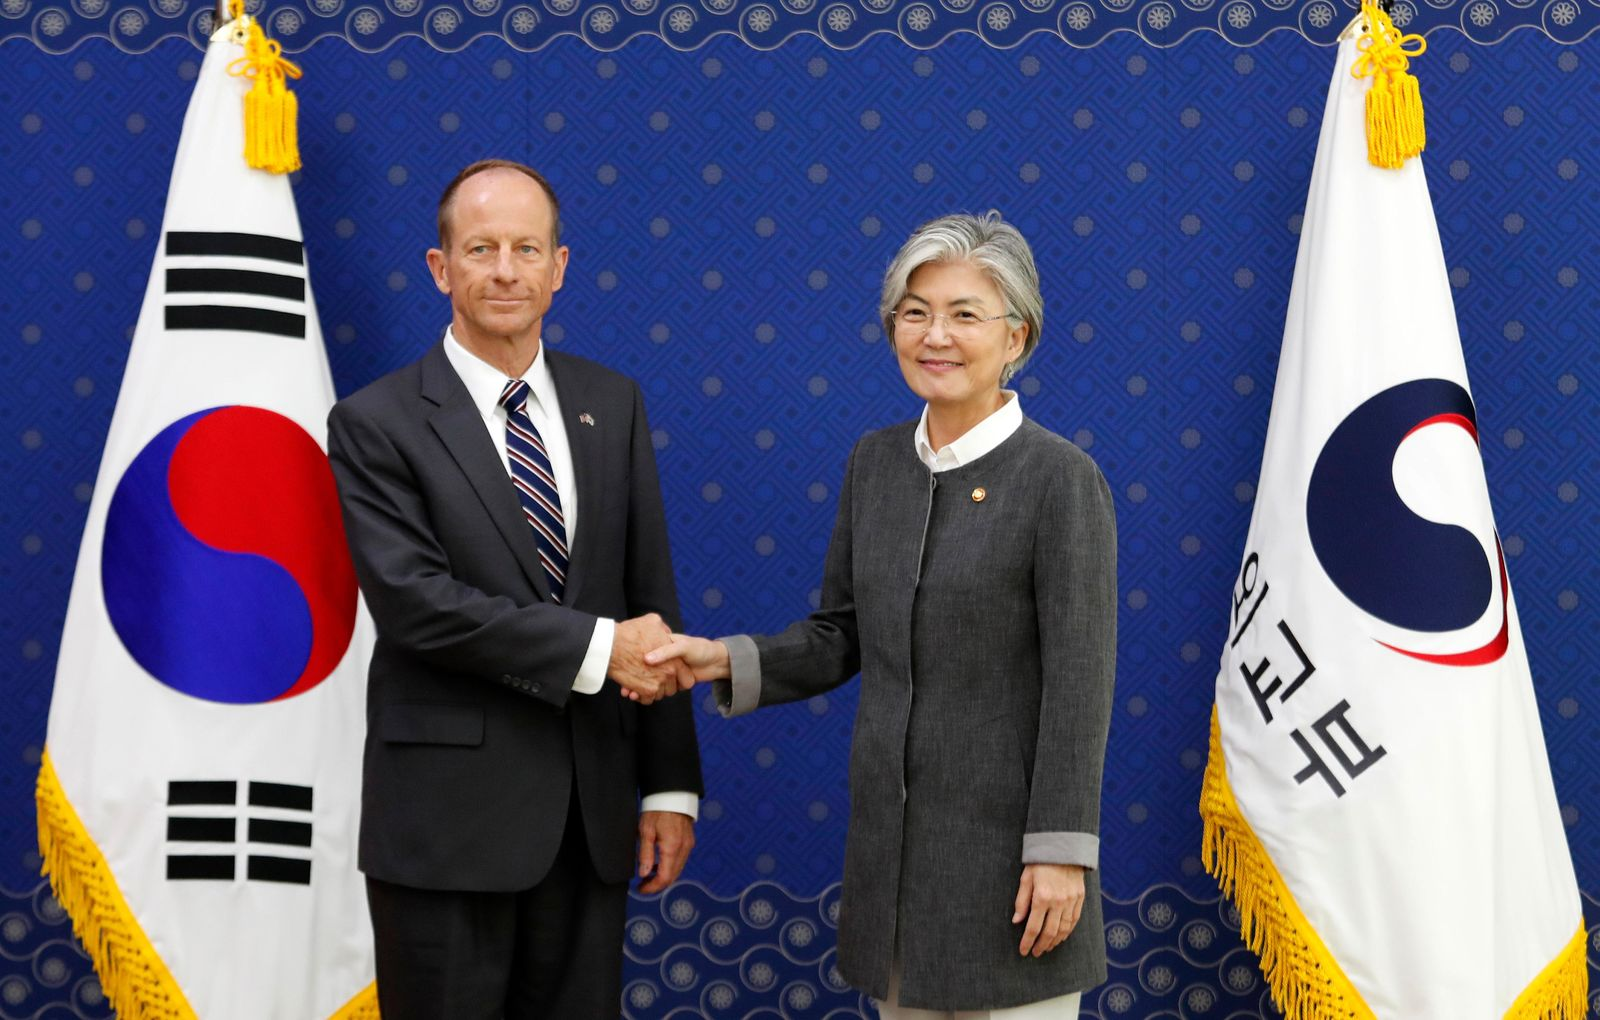 South Korean Foreign Minister Kang Kyung-wha, right, shakes hands with David Stilwell, U.S Assistant Secretary of State for the Bureau of East Asian and Pacific Affairs, during a meeting at the foreign ministry in Seoul, South Korea, Wednesday, July 17, 2019. (AP Photo/Ahn Young-joon. Pool)